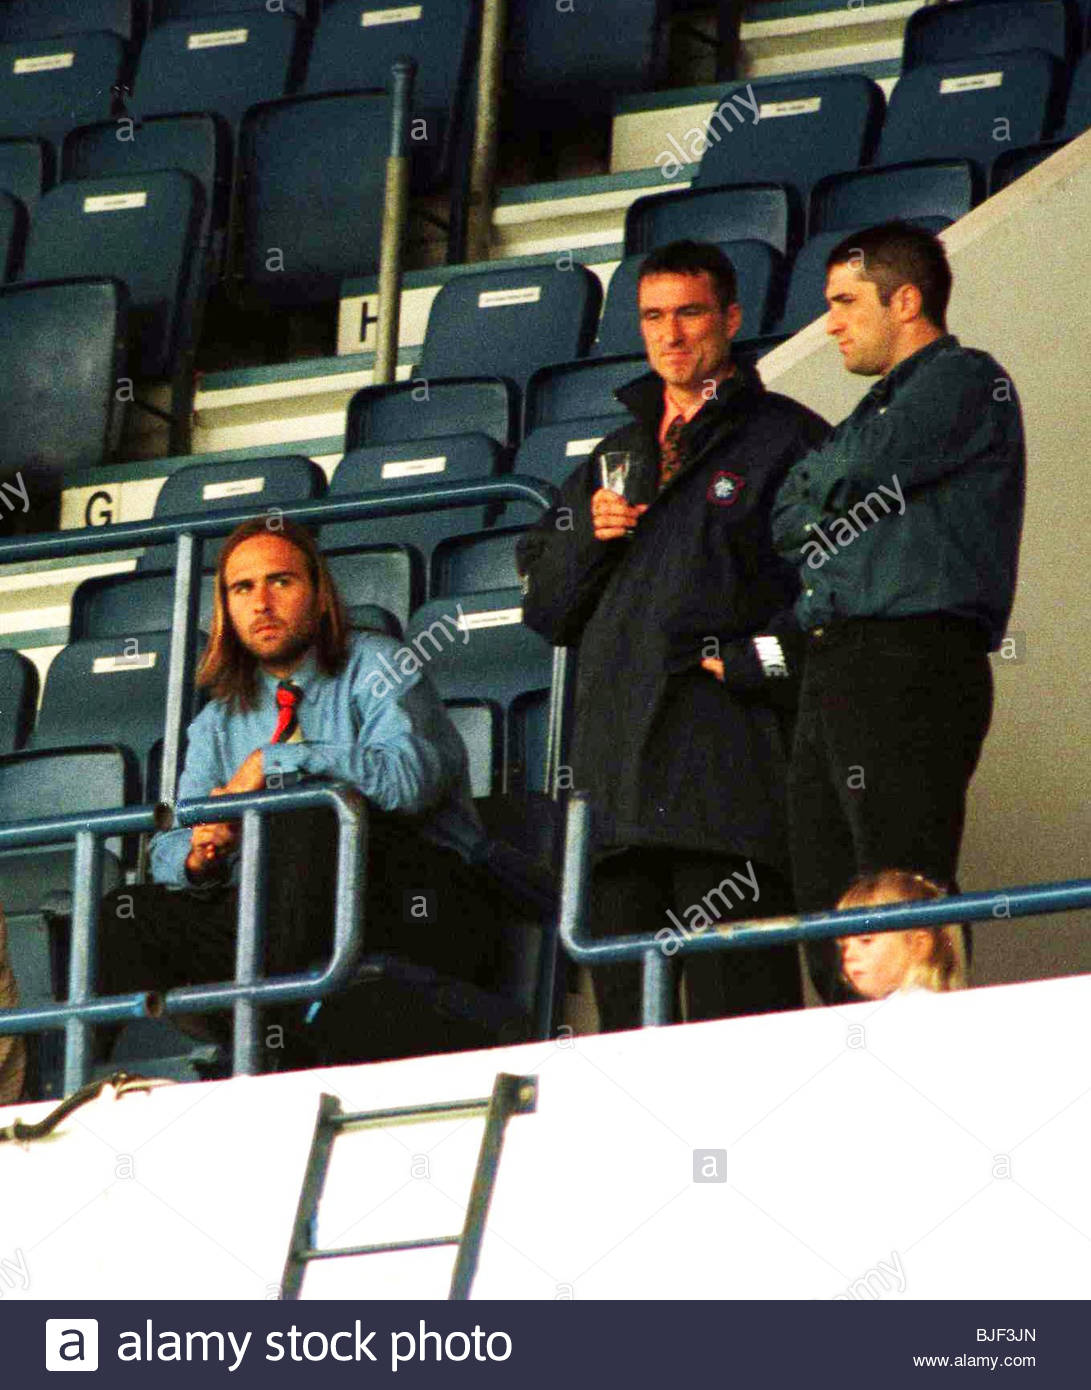 30/08/97 RESERVE LEAGUE RANGERS RESERVES V CELTIC RESERVES (1-1) IBROX - GLASGOW Sebastian Rozental (left) and Ian - Stock Image